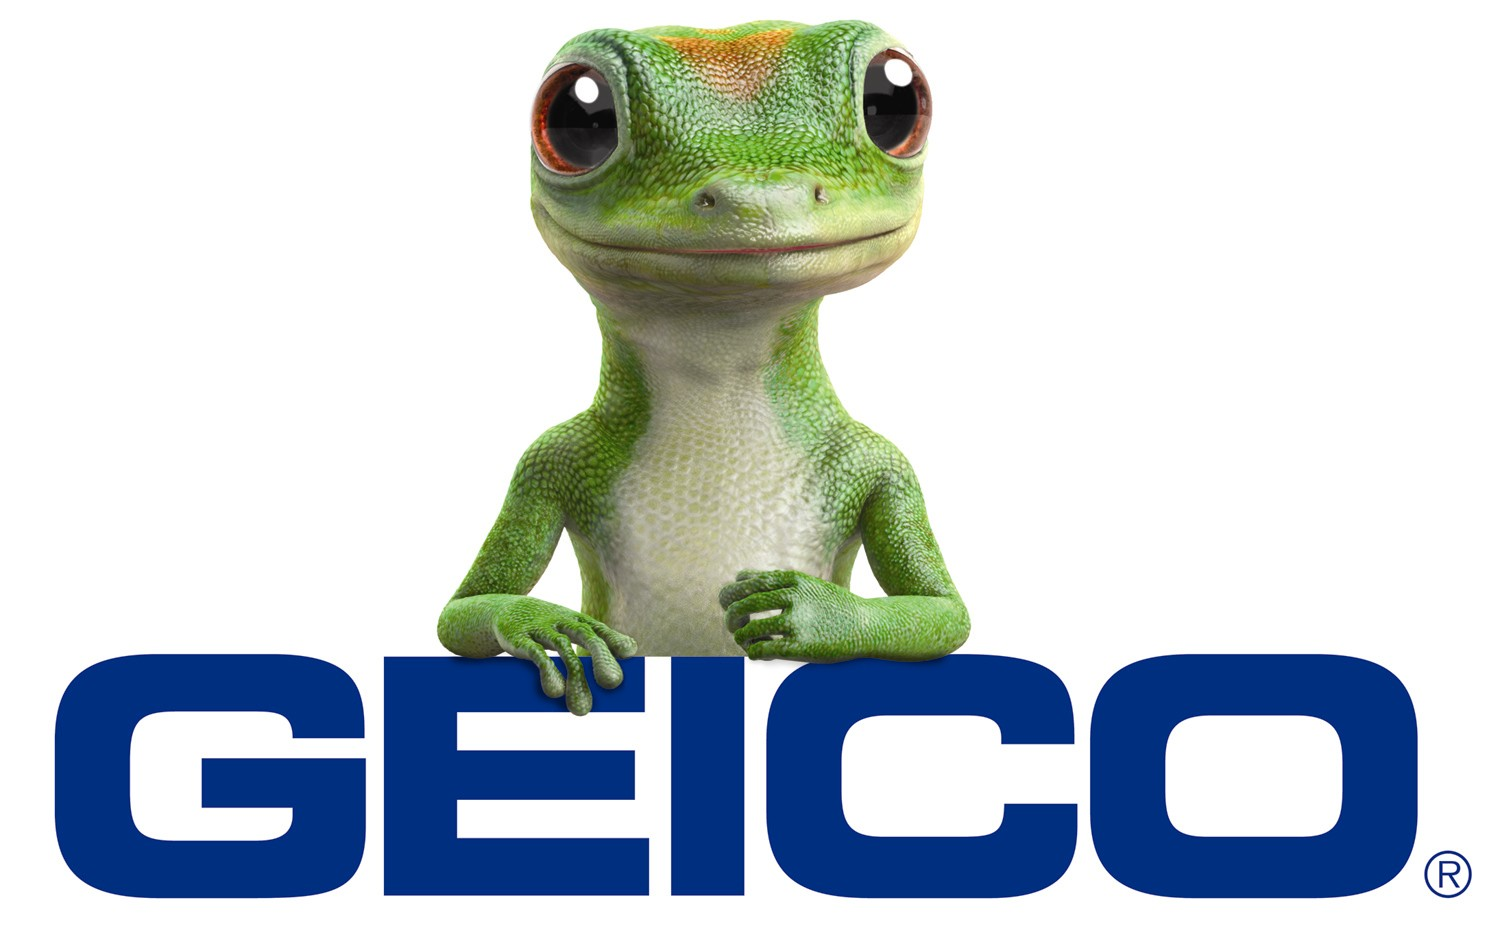 geico gecko and content marketing with a book